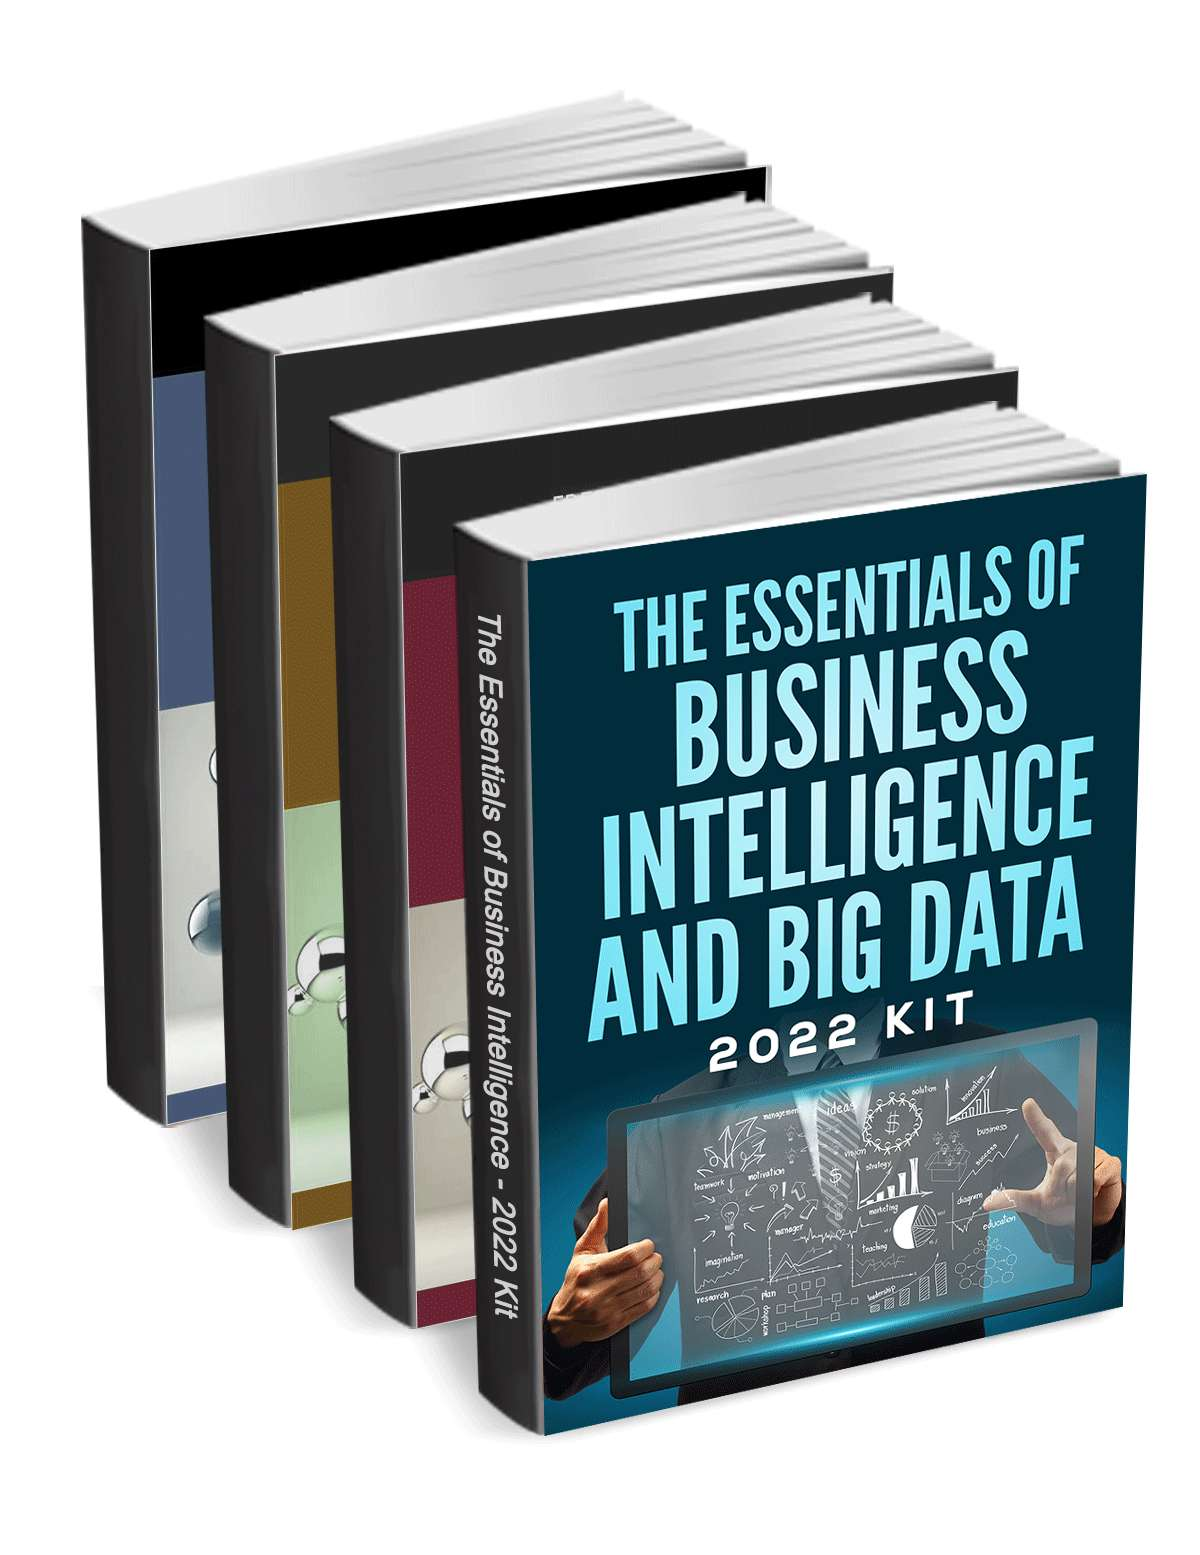 The Essentials of Business Intelligence and Big Data - 2016 Kit